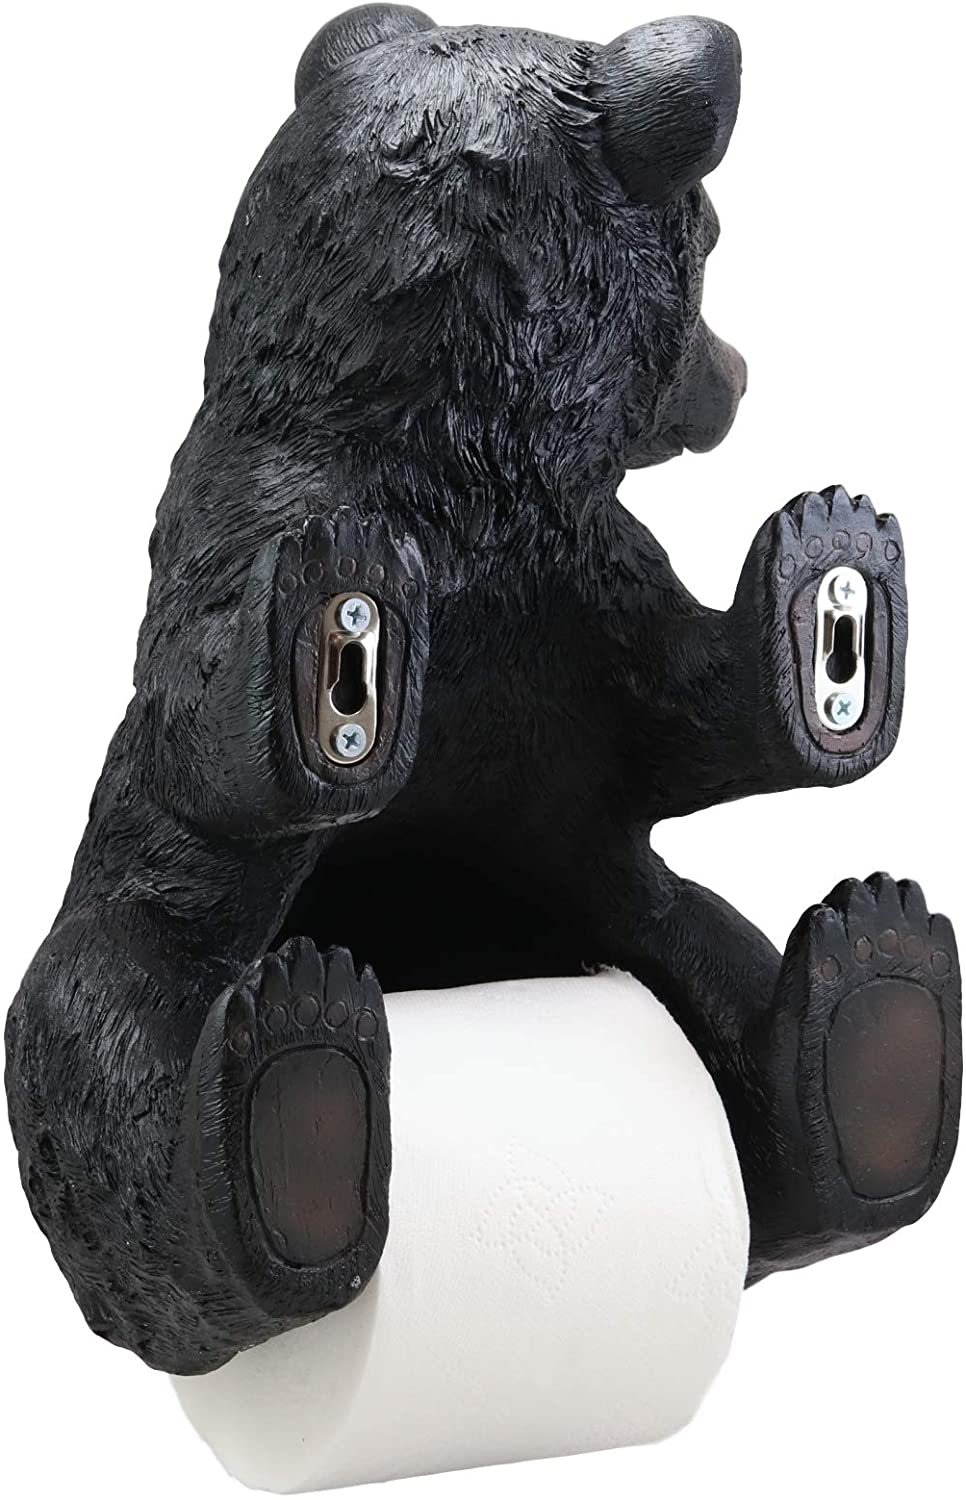 BEAR TP HOLDER Pooping Black Bear Toilet Paper Holder Large 13.5 Inch Bath Room Wall Decor